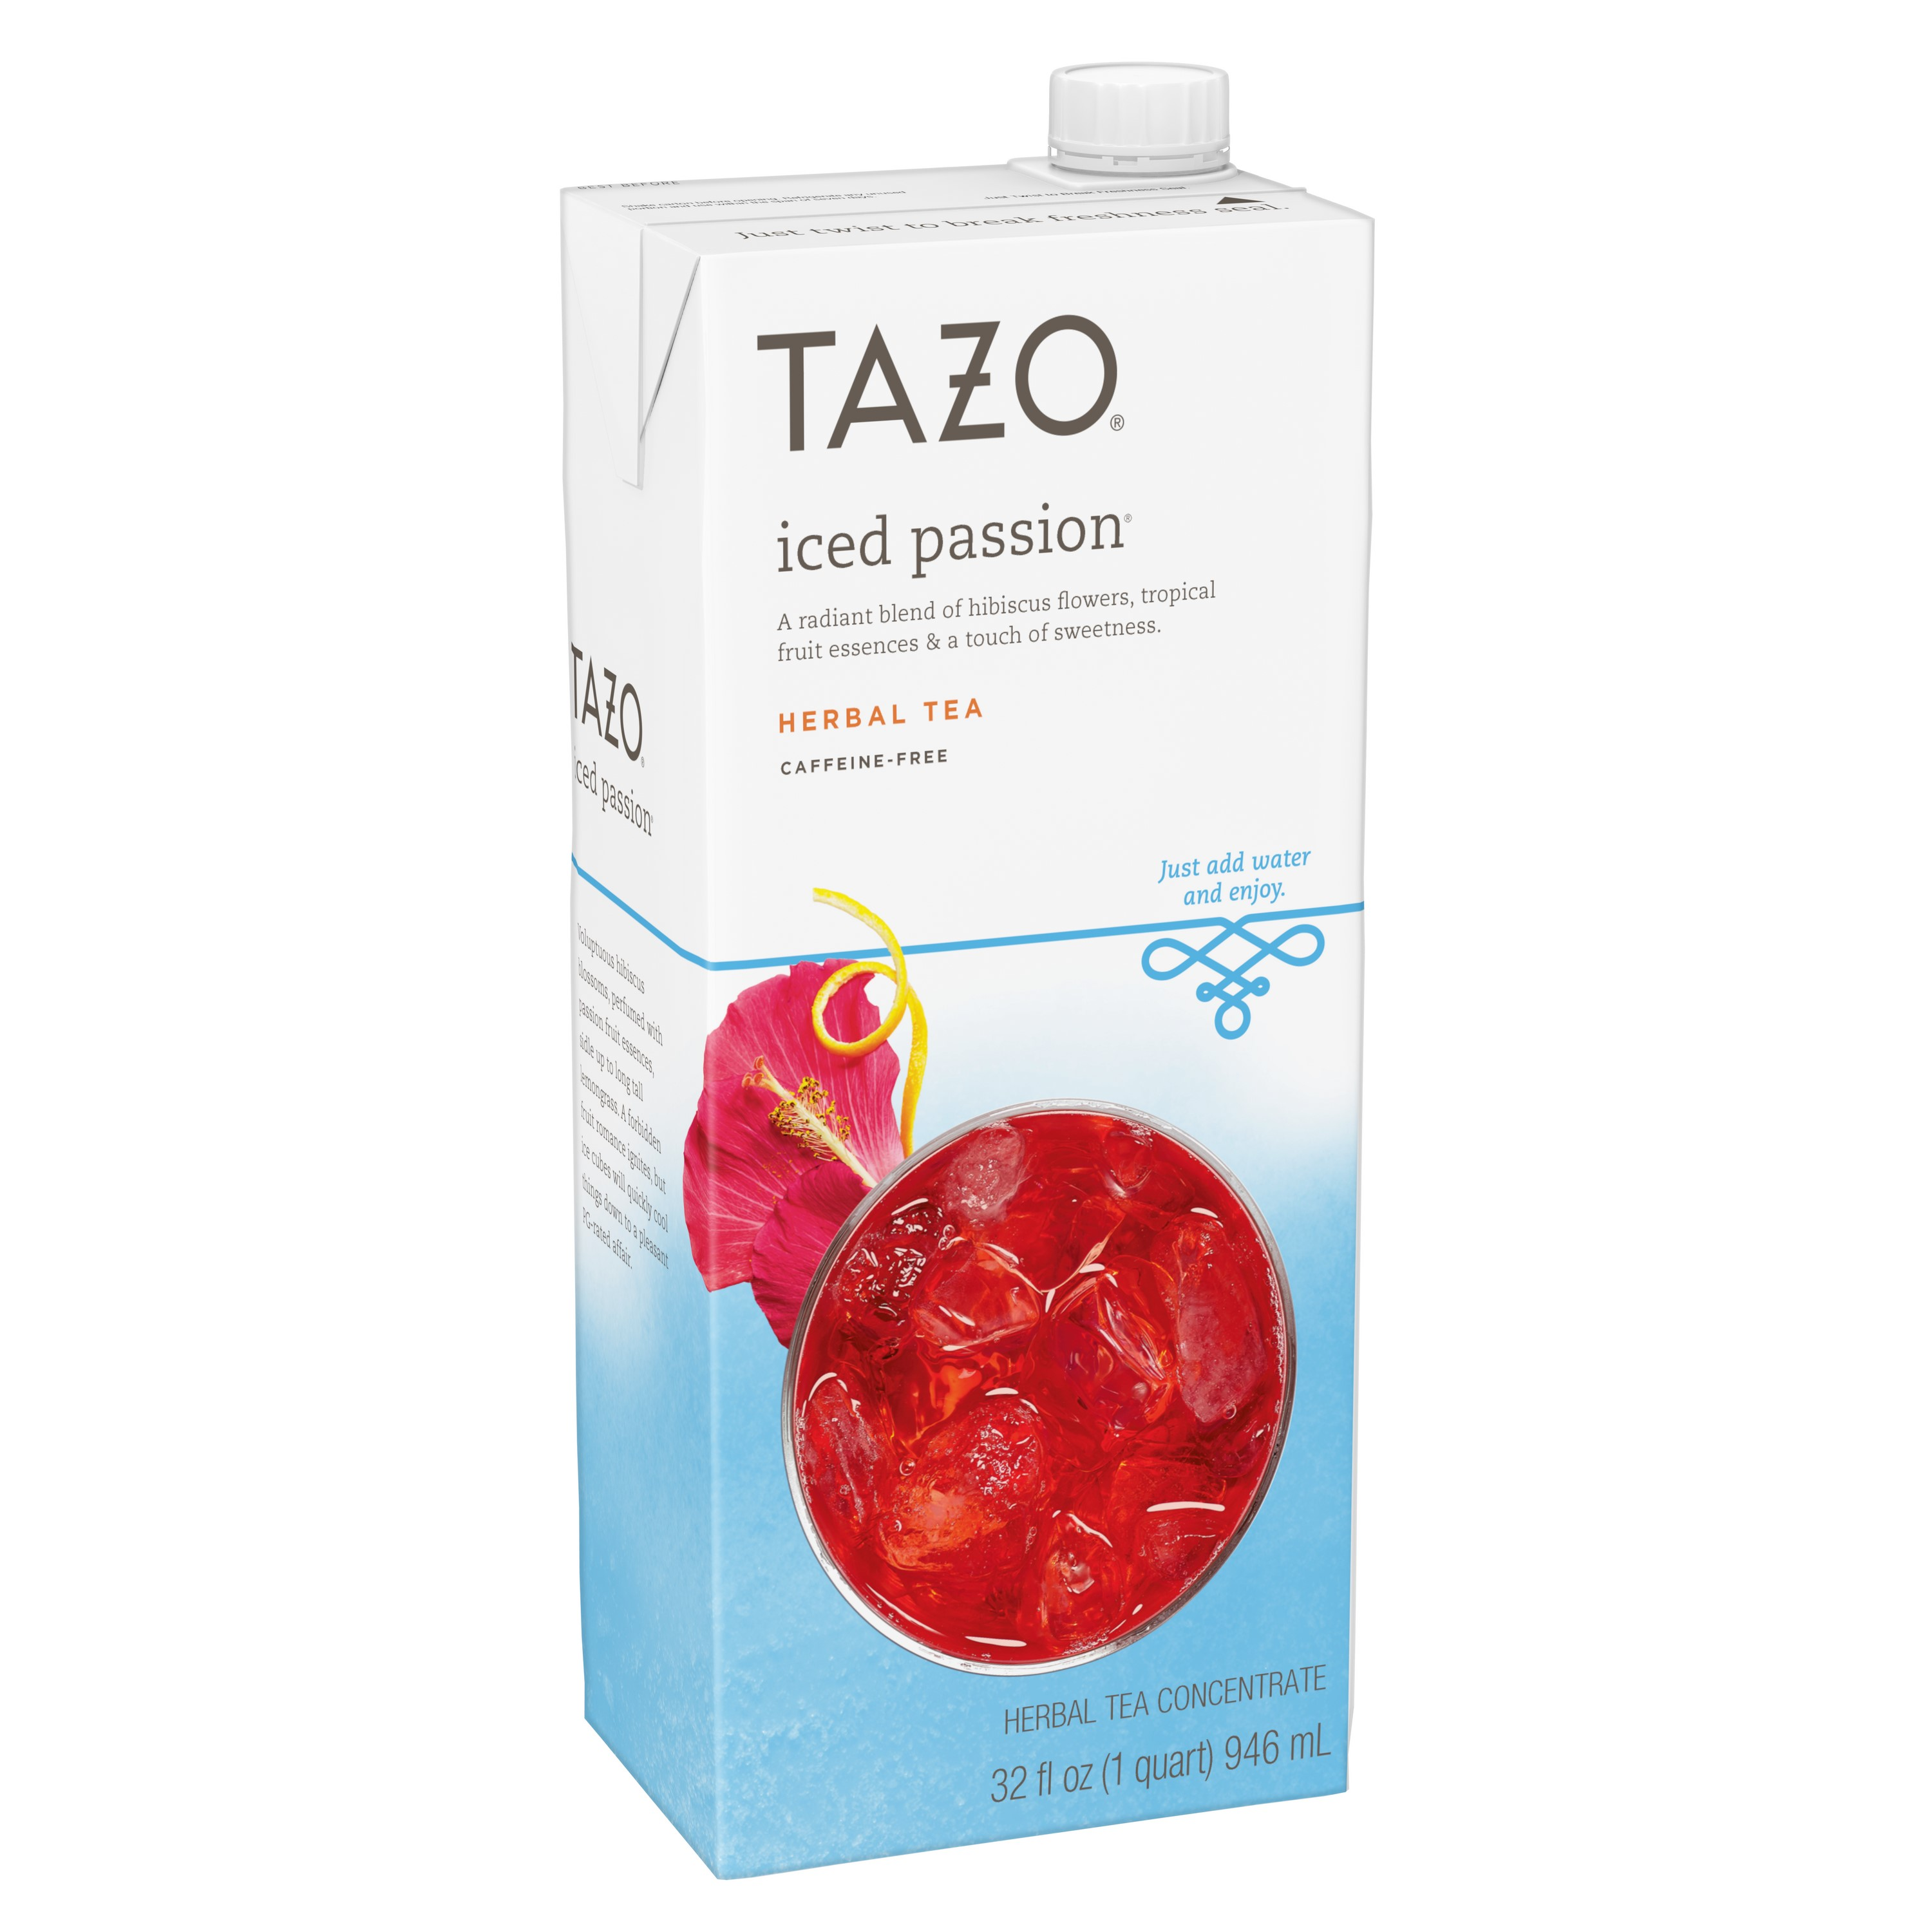 Tazo Herbal Tea Concentrate, Iced